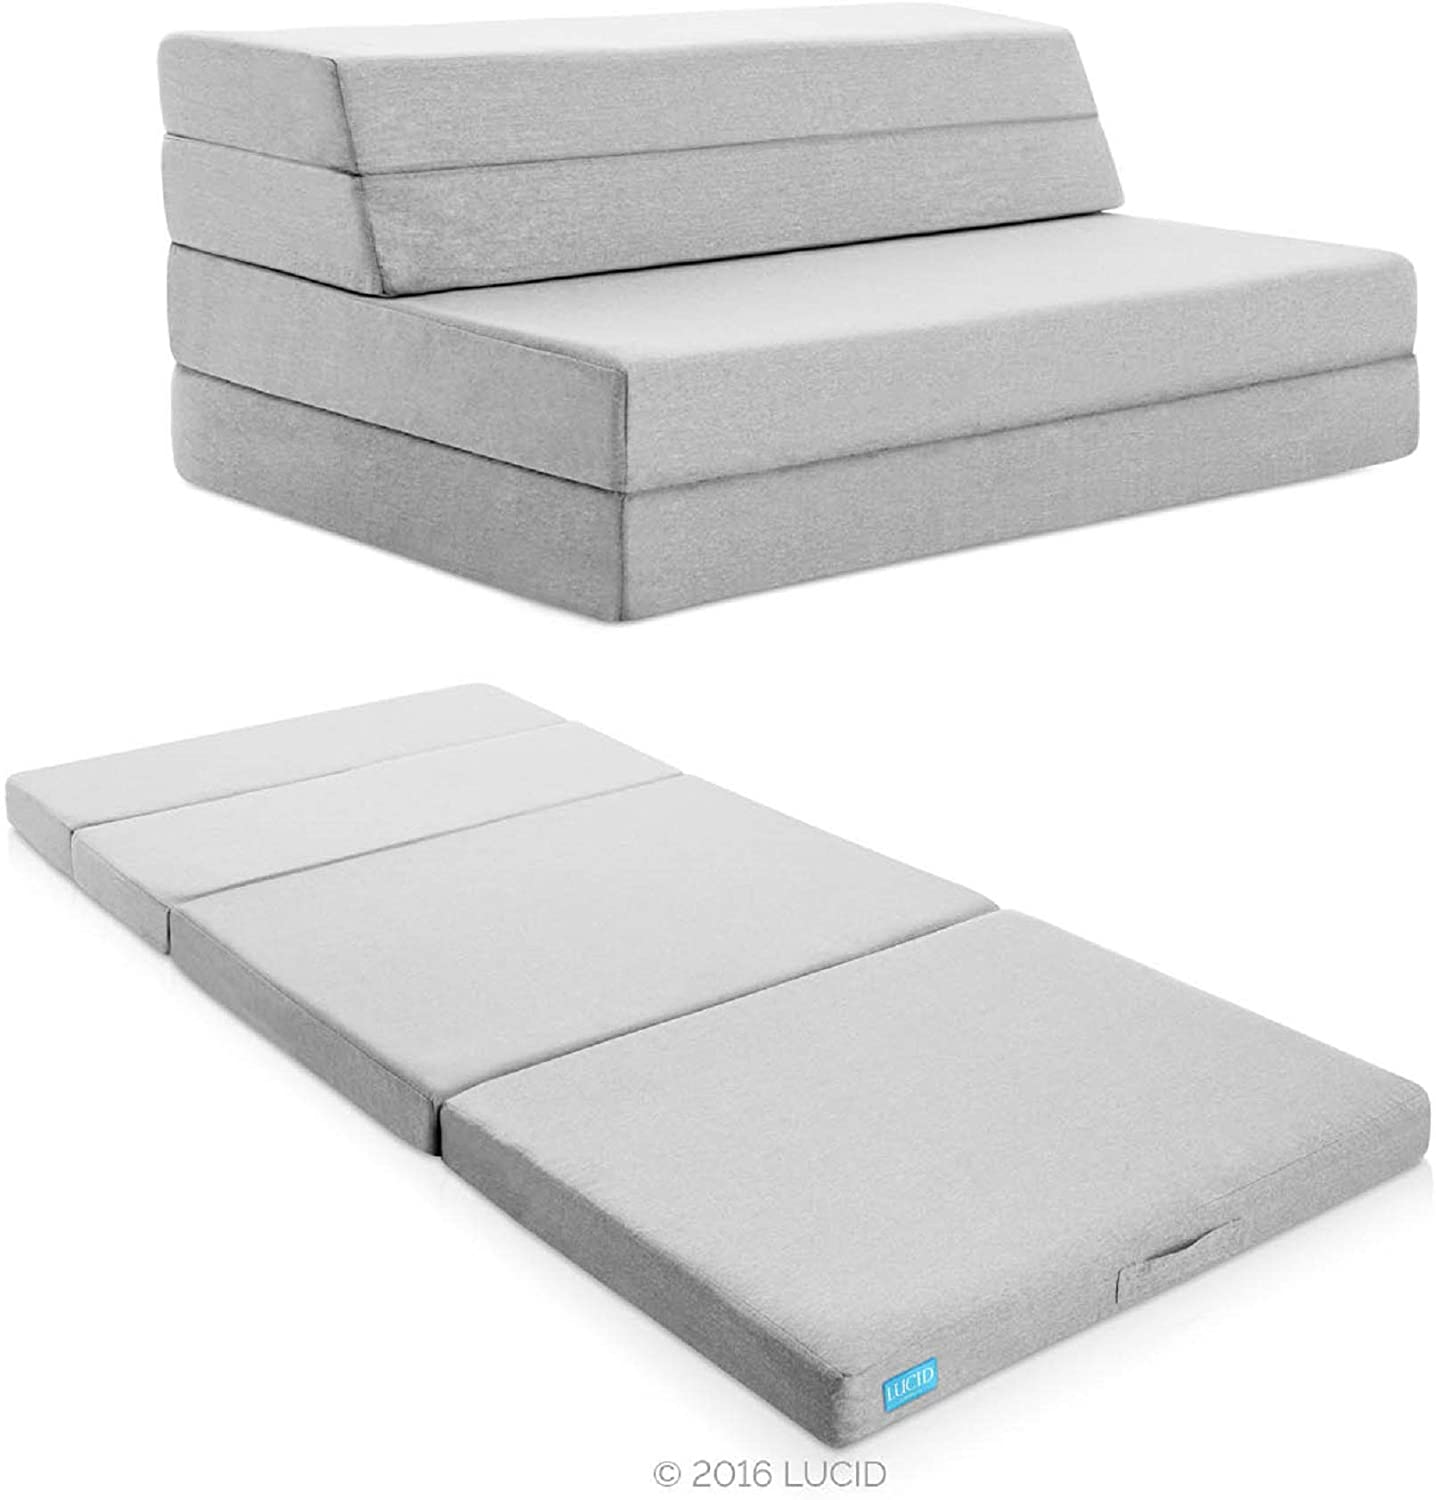 "Lucid 4"" FoldinLucid 4"" Folding Mattress & Sofa g Mattress & Sofa"